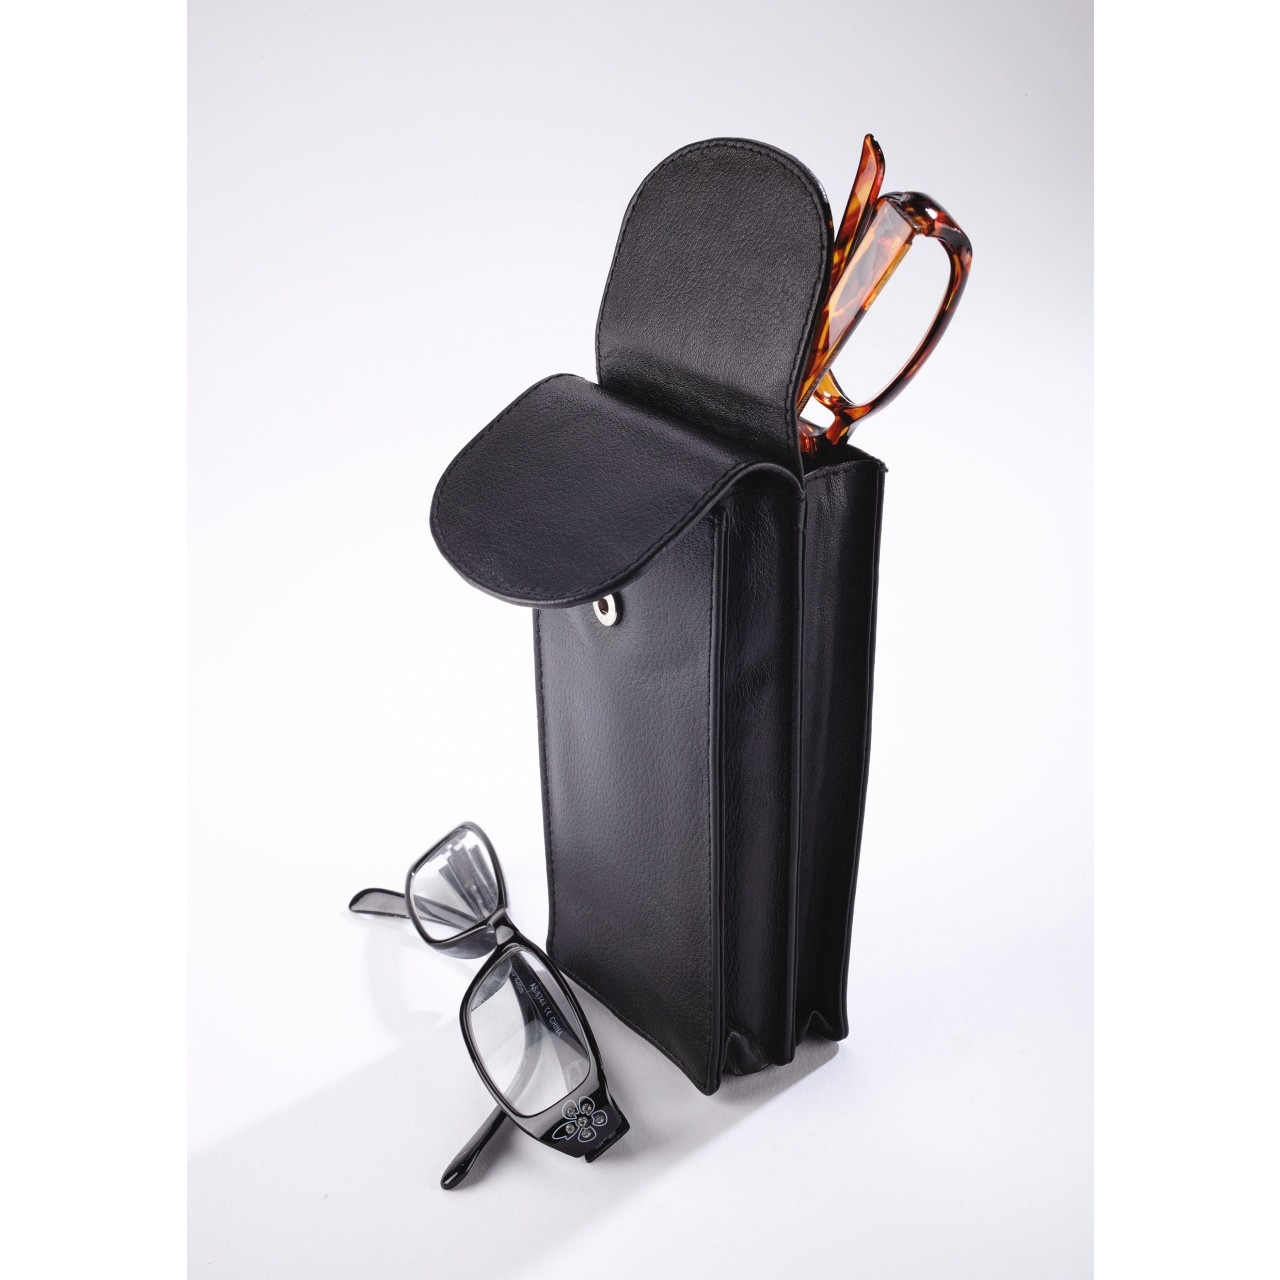 7. Personalised Leather Double Glasses Case